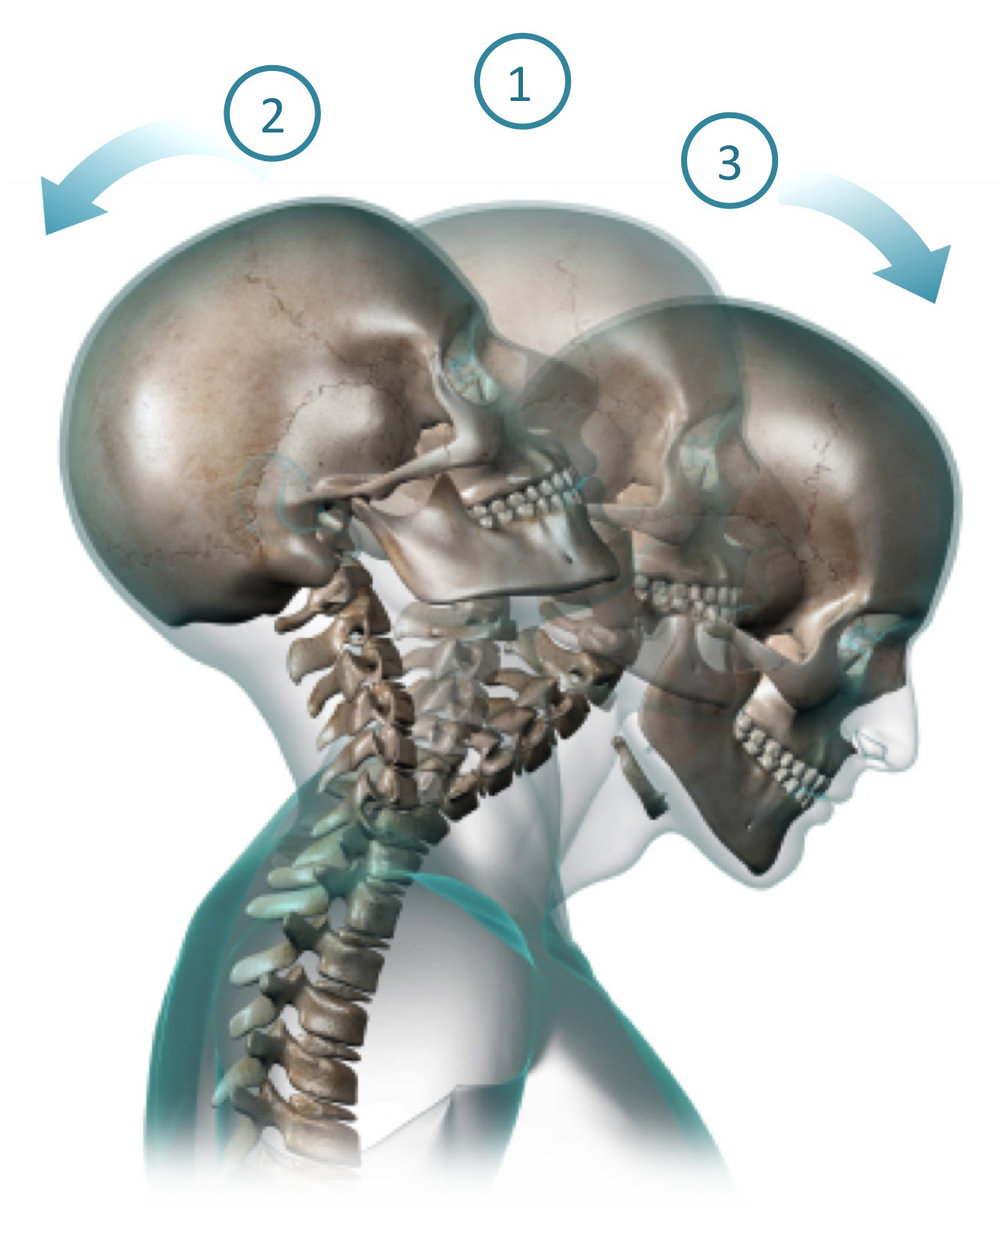 Motor Vehicle Accident - Neck injury caused by whiplash is the most common injury among car occupants after a motor vehicle accident. This can lead to Chronic Whiplash-Associated Disorder.Conservative treatment includes Physical therapy. This is usually followed by Epidural Steroid Injection (ESI) or Medial Branch Block if needed.